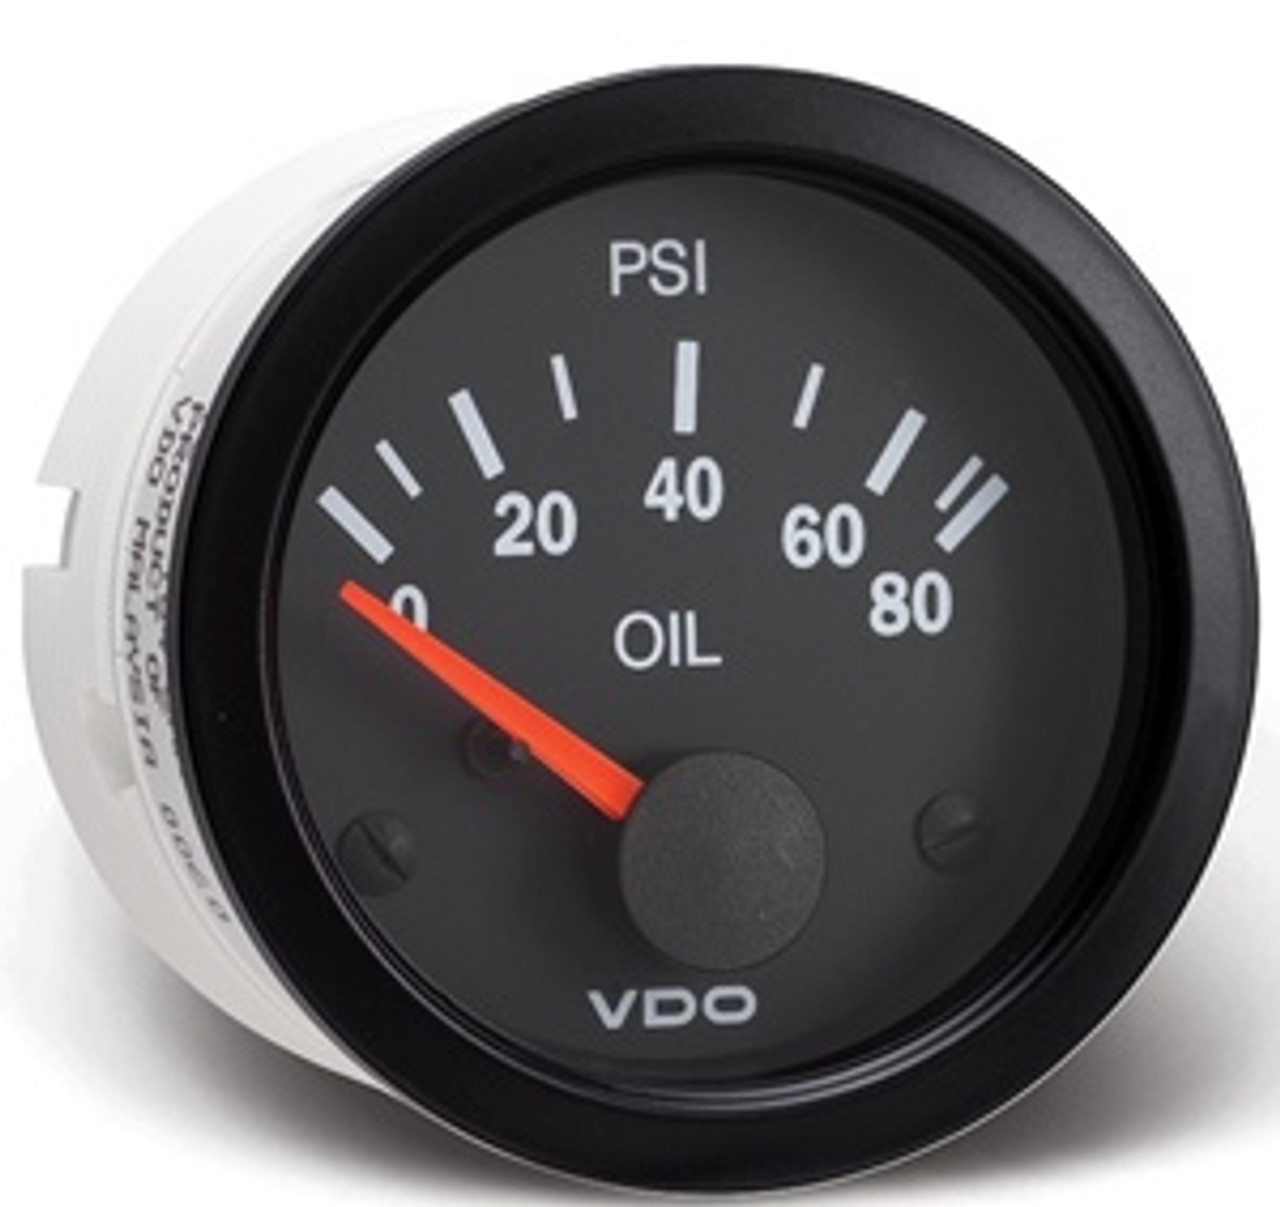 "VDO Vision Part #350-104 Oil Pressure, 0-80psi. 52mm (2 1/16"") Diameter. Thru-dial Lighting w/ Lighted Pointer. 12 Volt. Requires VDO 10-180 Ohm Sender."